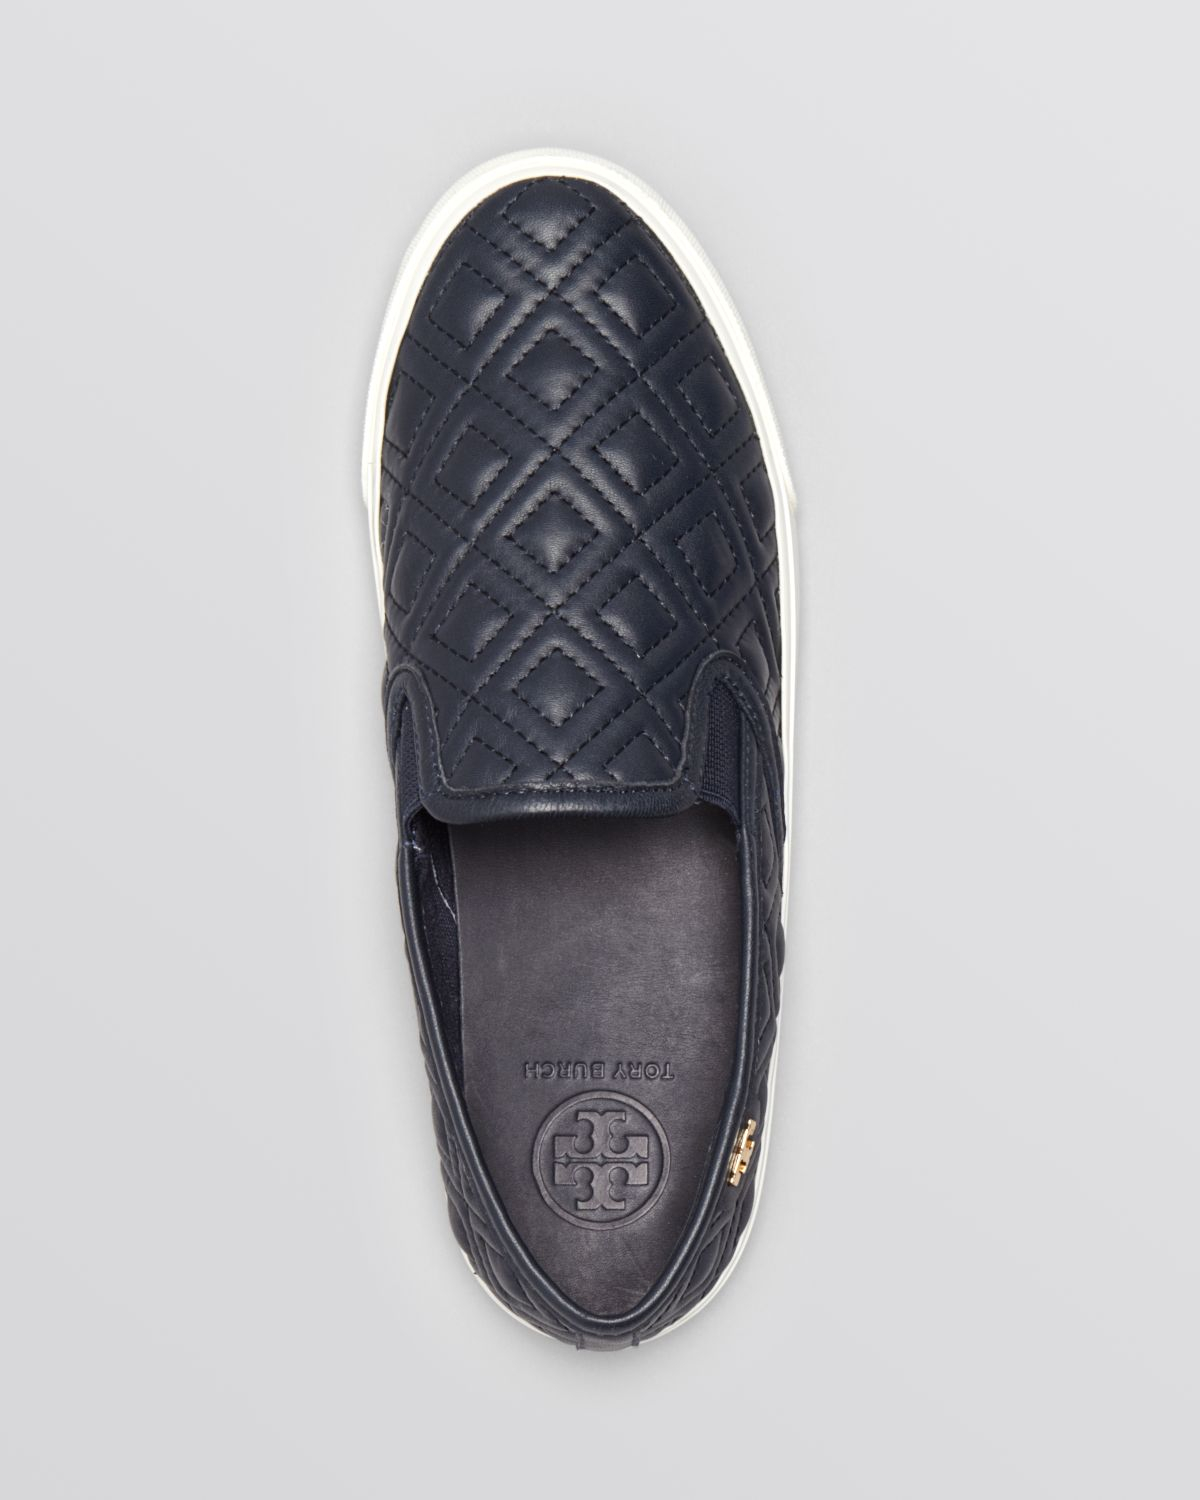 dd4032e1a8f5 Lyst - Tory Burch Flat Slip On Sneakers Jesse Quilted in Blue